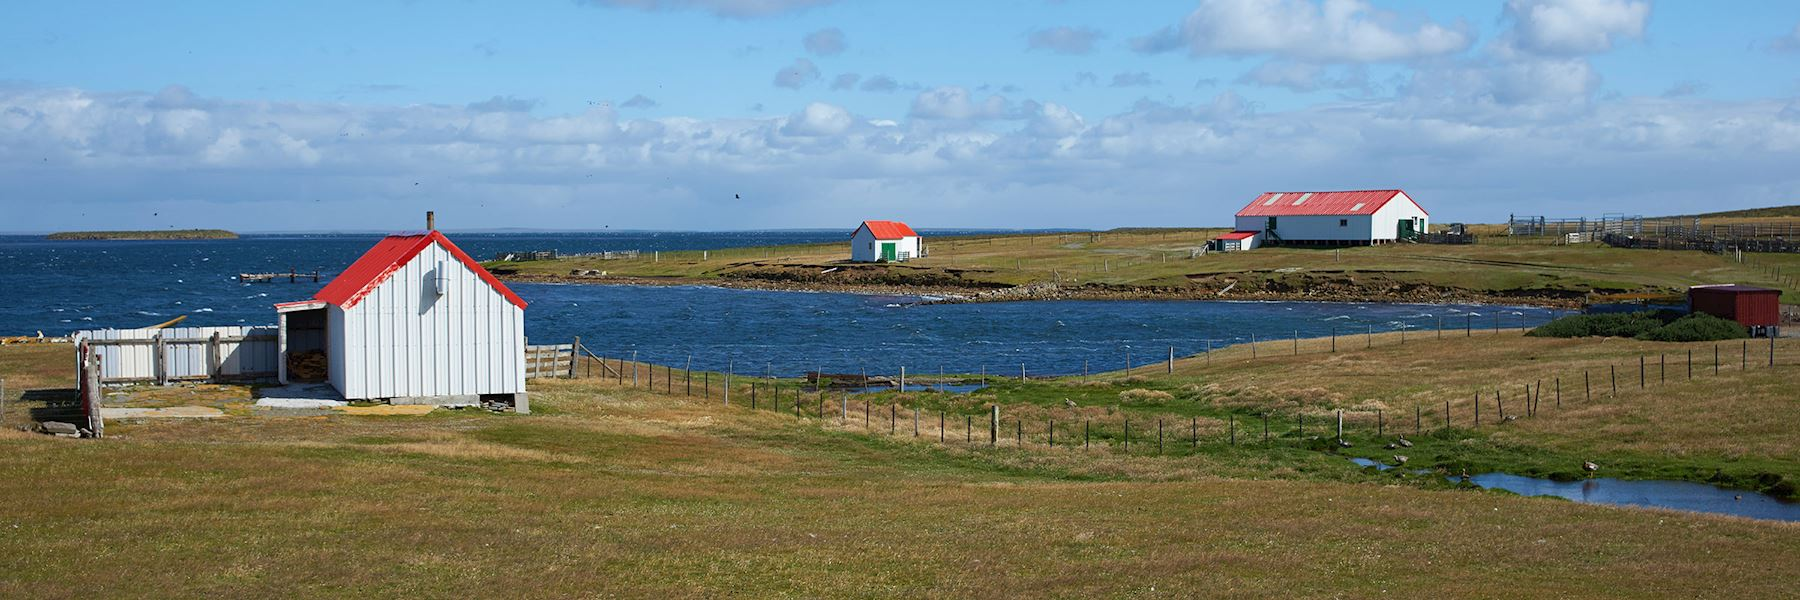 Places to visit in the Falkland Islands